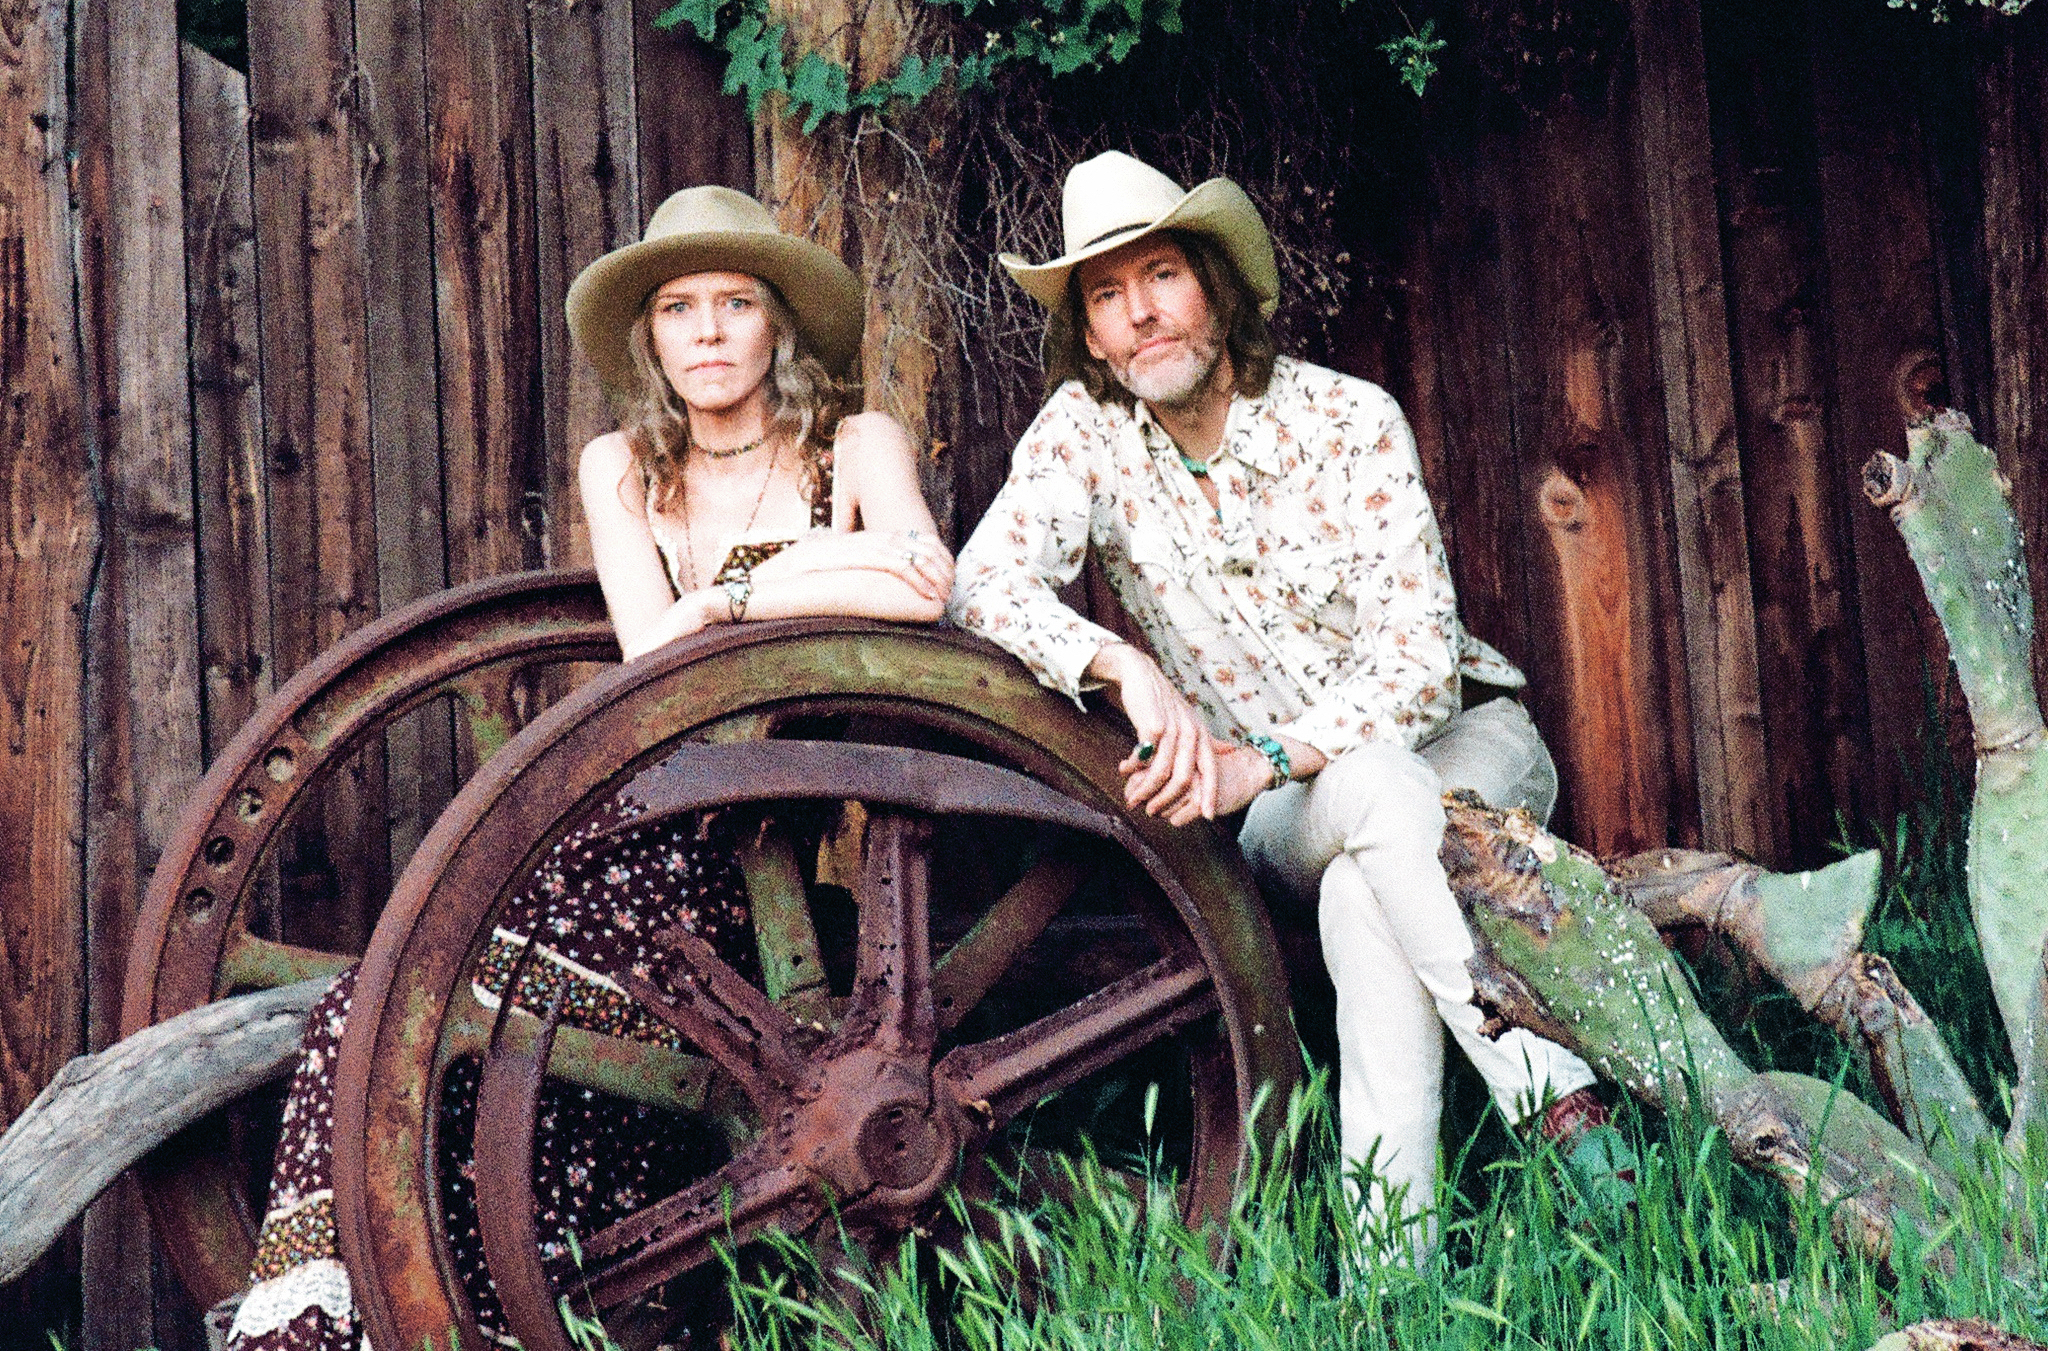 Gillian Welch (left) and Dave Rawlings. Photo by Henry Diltz.